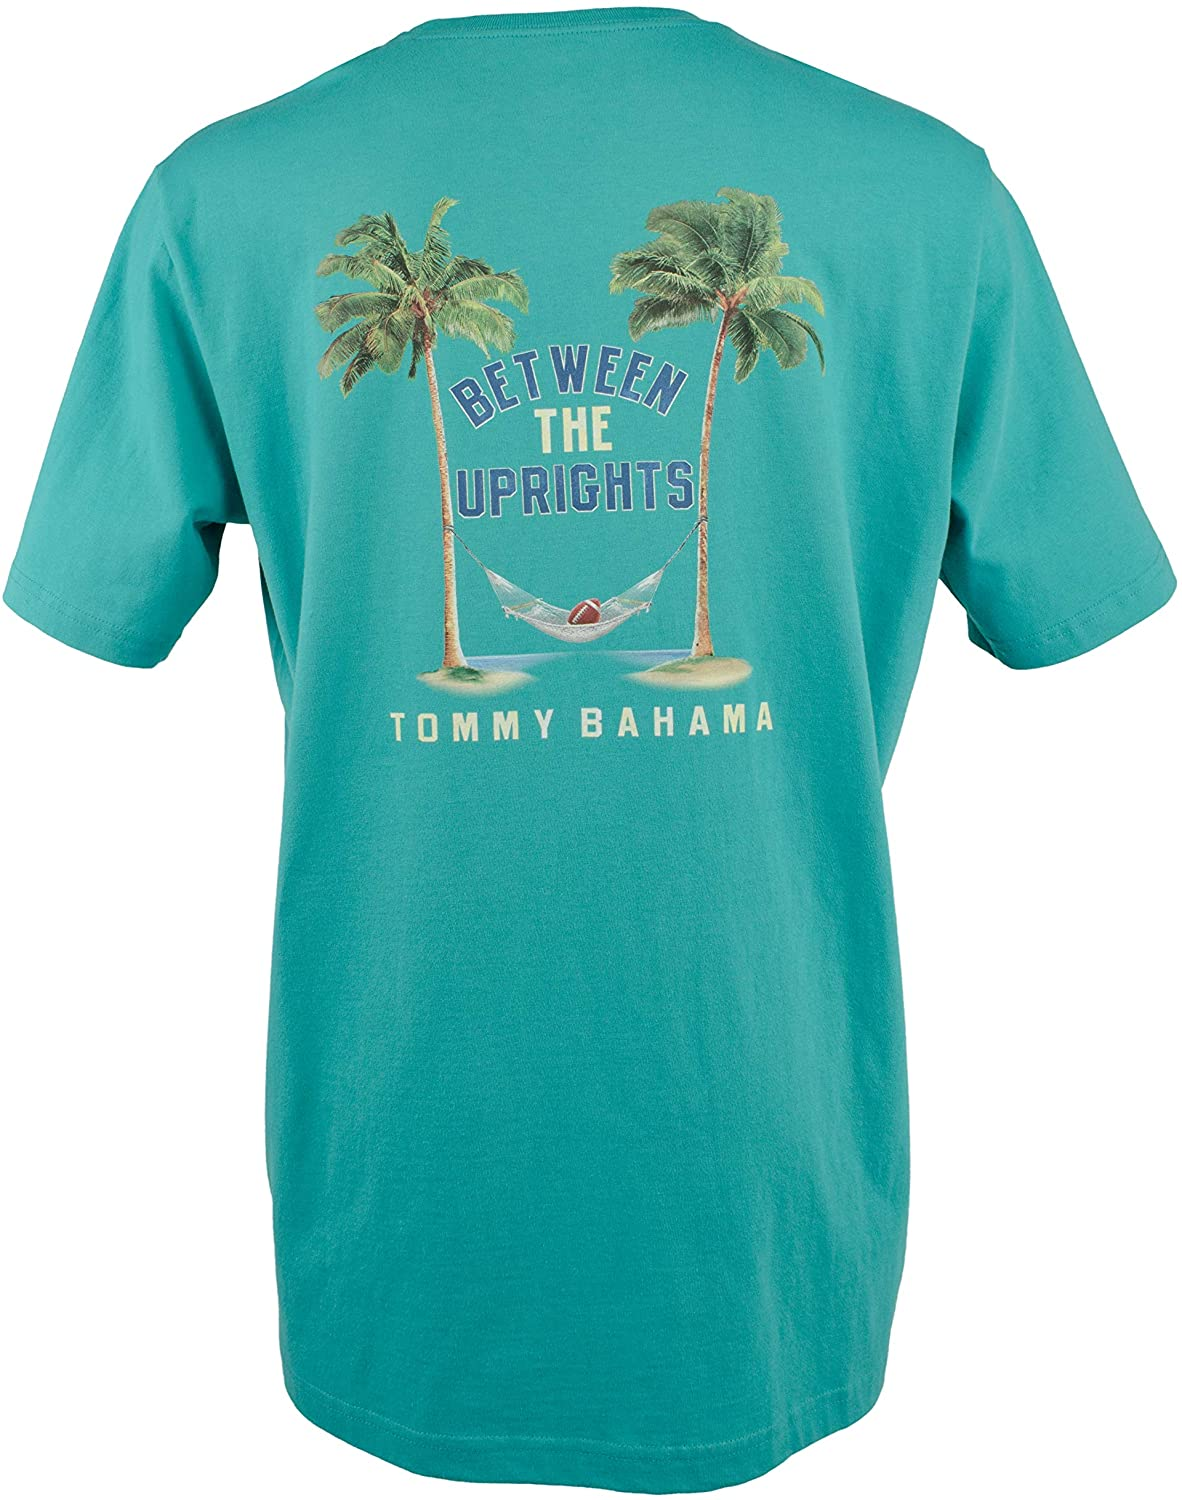 Tommy Bahama Men's Big & Tall Between The Uprights Tee